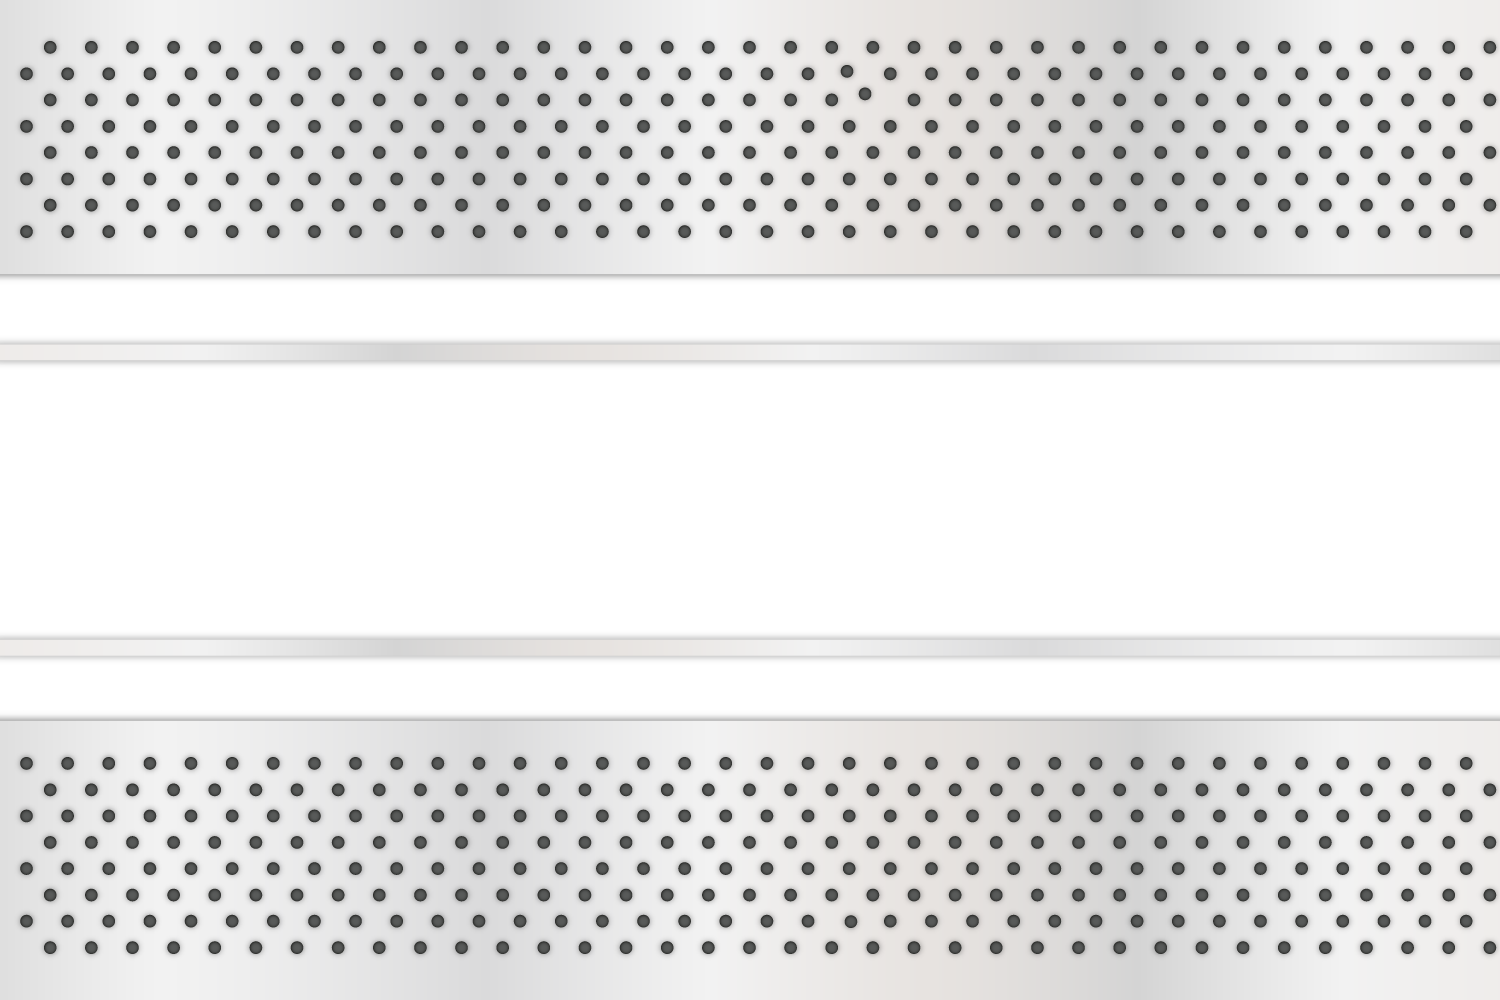 Metallic vector. Black and white pattern